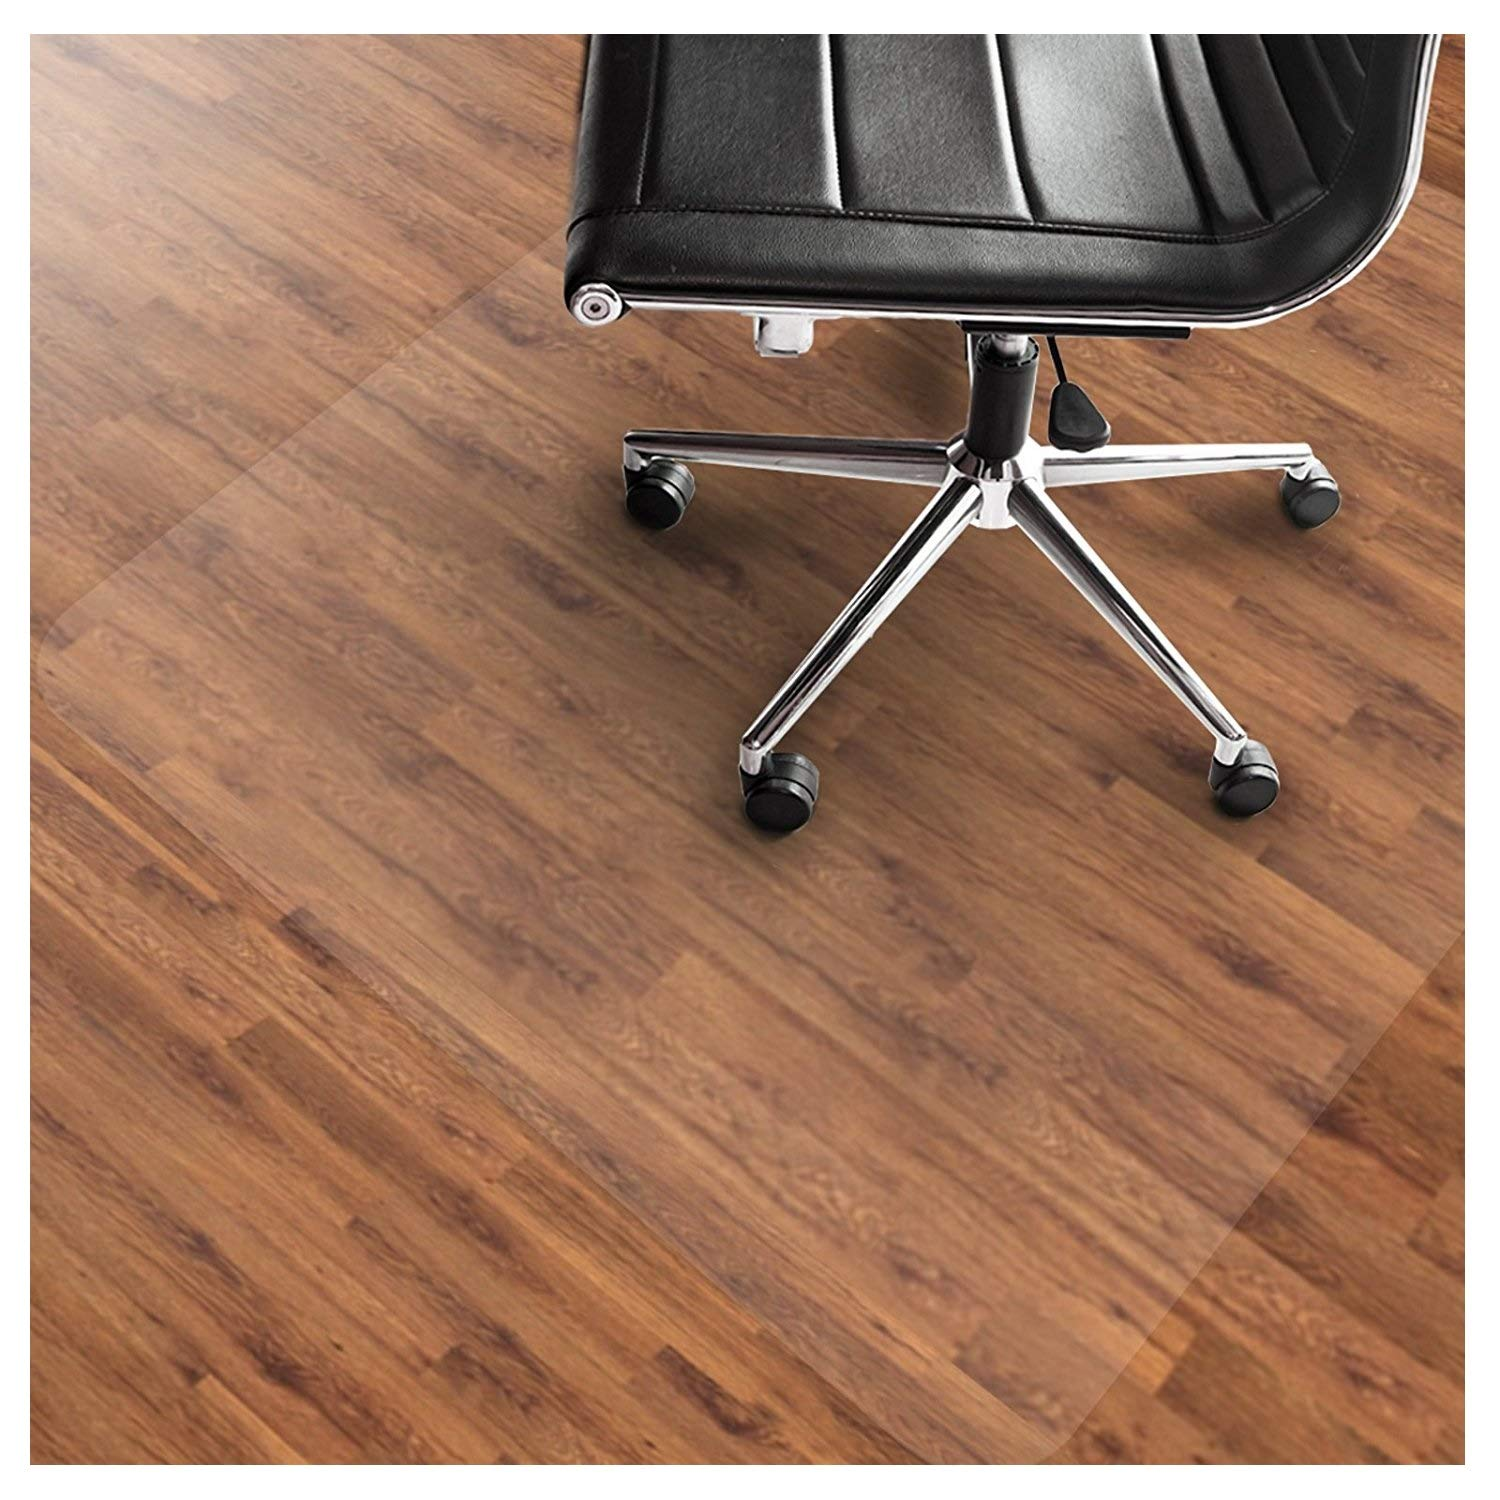 Office Marshal PVC Chair Mat for Hard Floors - 48'' x 60'' | Multiple Sizes Available | Clear, Multi-purpose Floor Protector